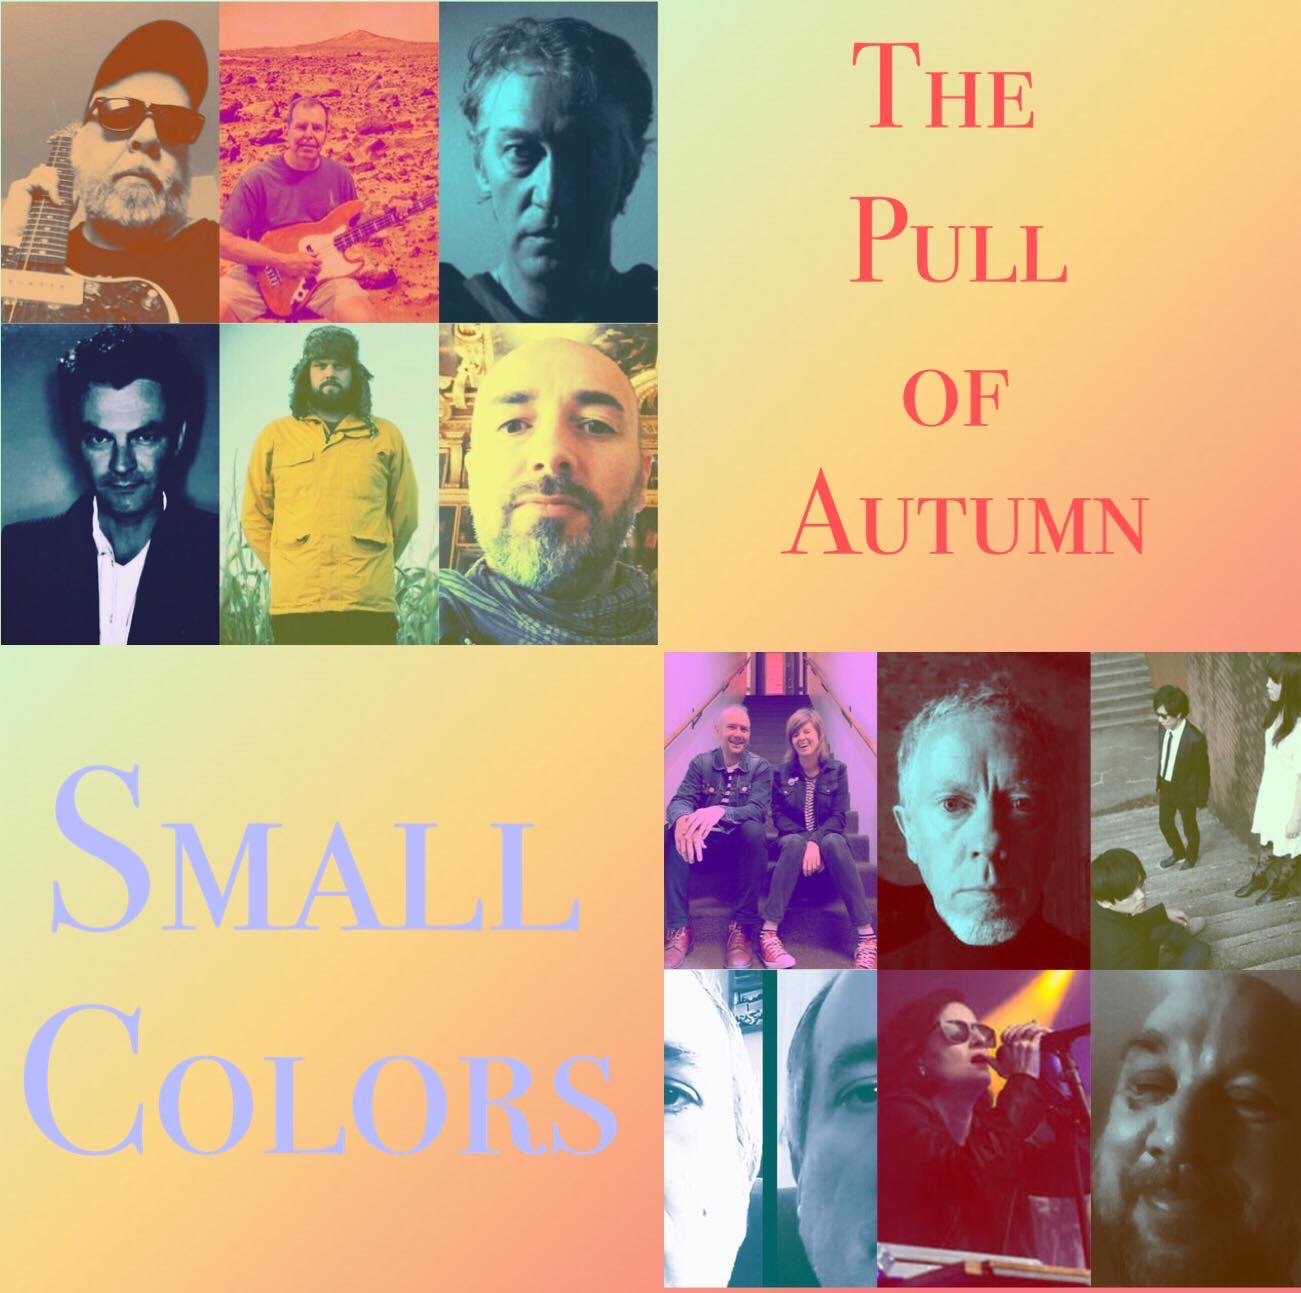 The Pull of Autumn – image 1 by Matthew Darrow